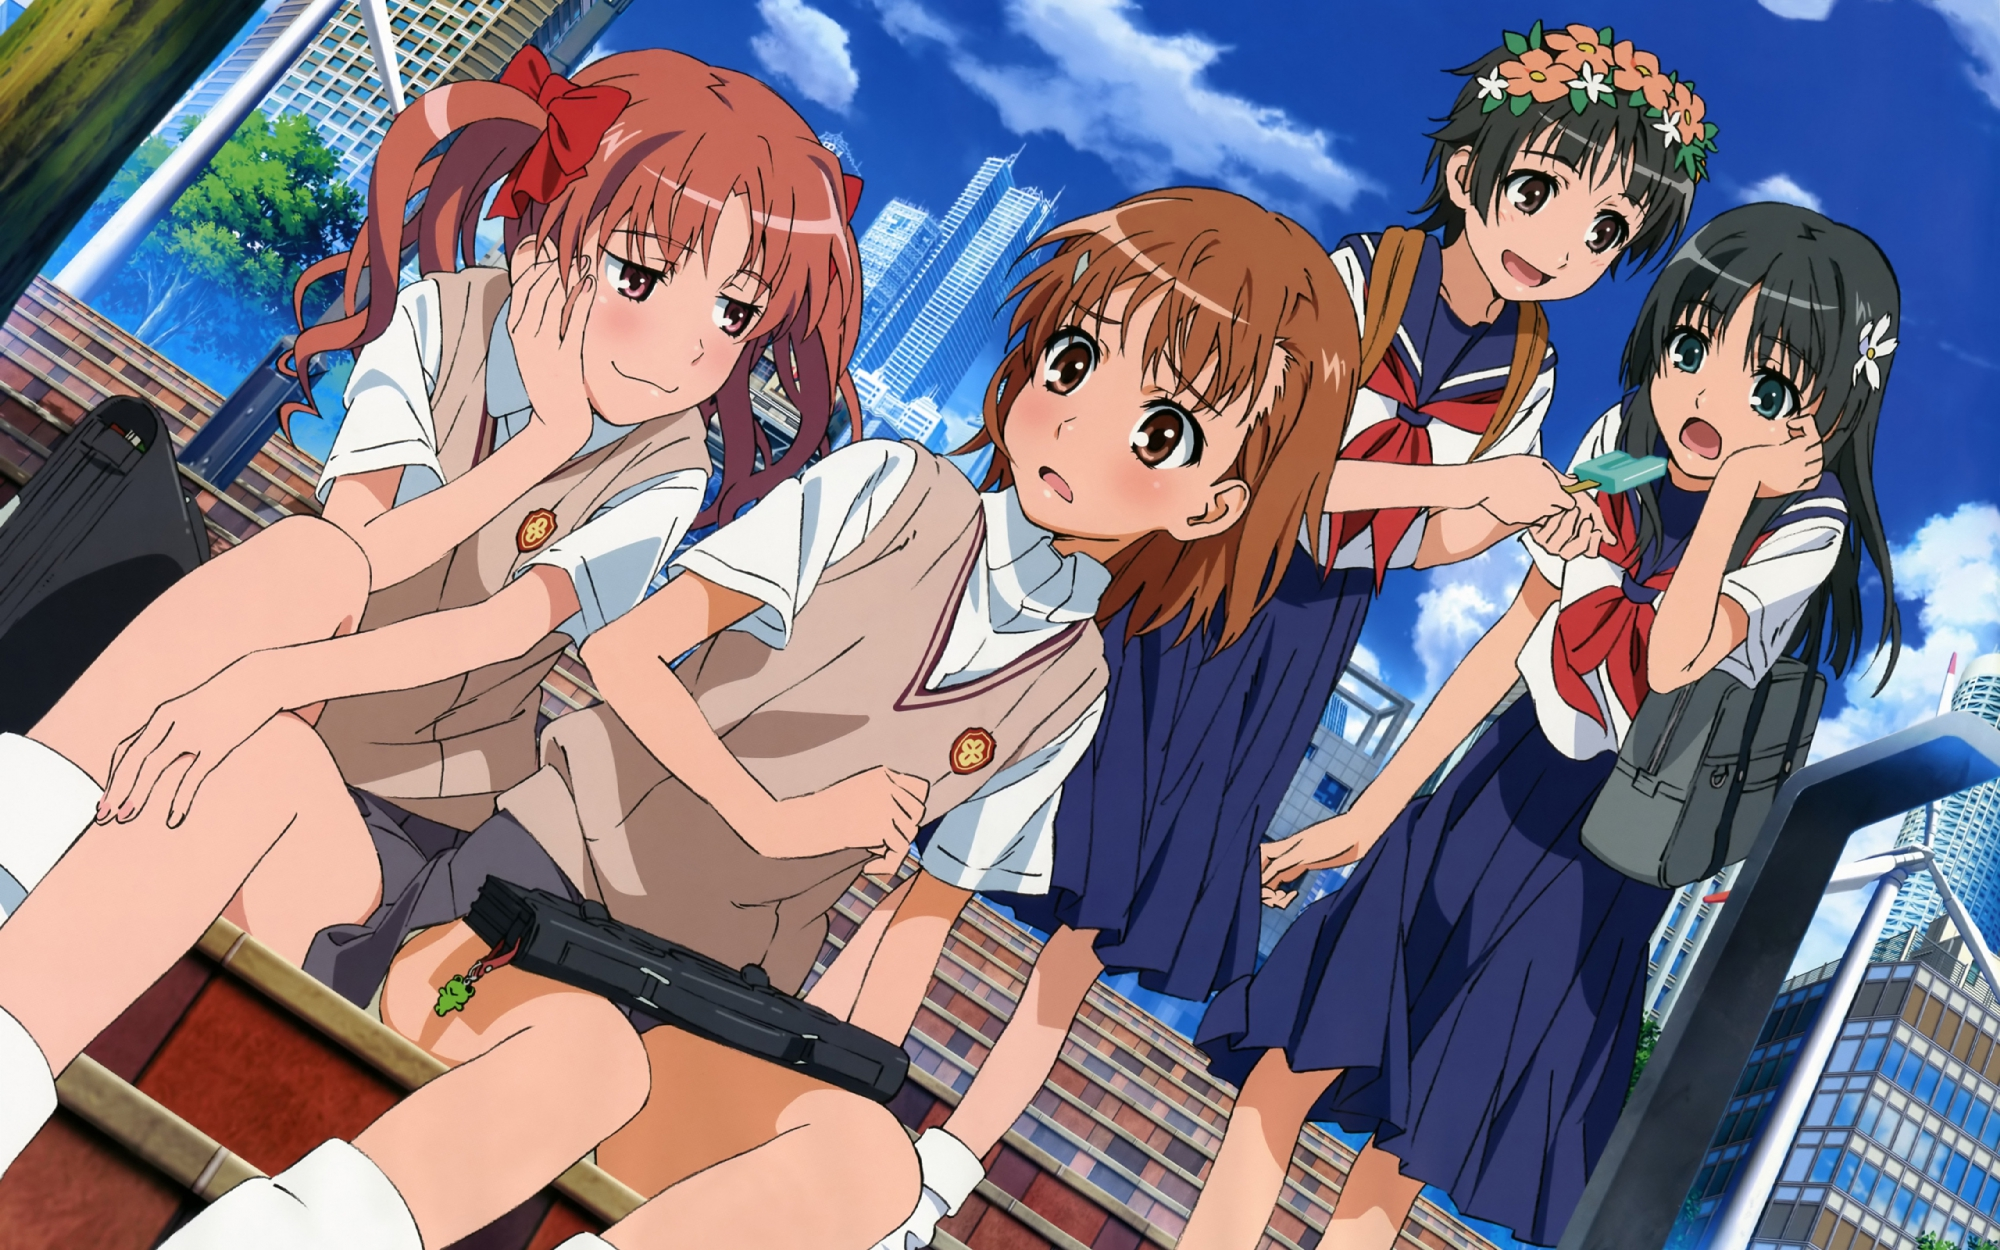 black_hair blush bow brown_eyes brown_hair building city clouds food green_eyes headdress ice_cream kiyoshi_tateshi kneehighs long_hair misaka_mikoto pink_eyes saten_ruiko school_uniform shirai_kuroko short_hair skirt socks stairs to_aru_kagaku_no_railgun to_aru_majutsu_no_index twintails uiharu_kazari windmill